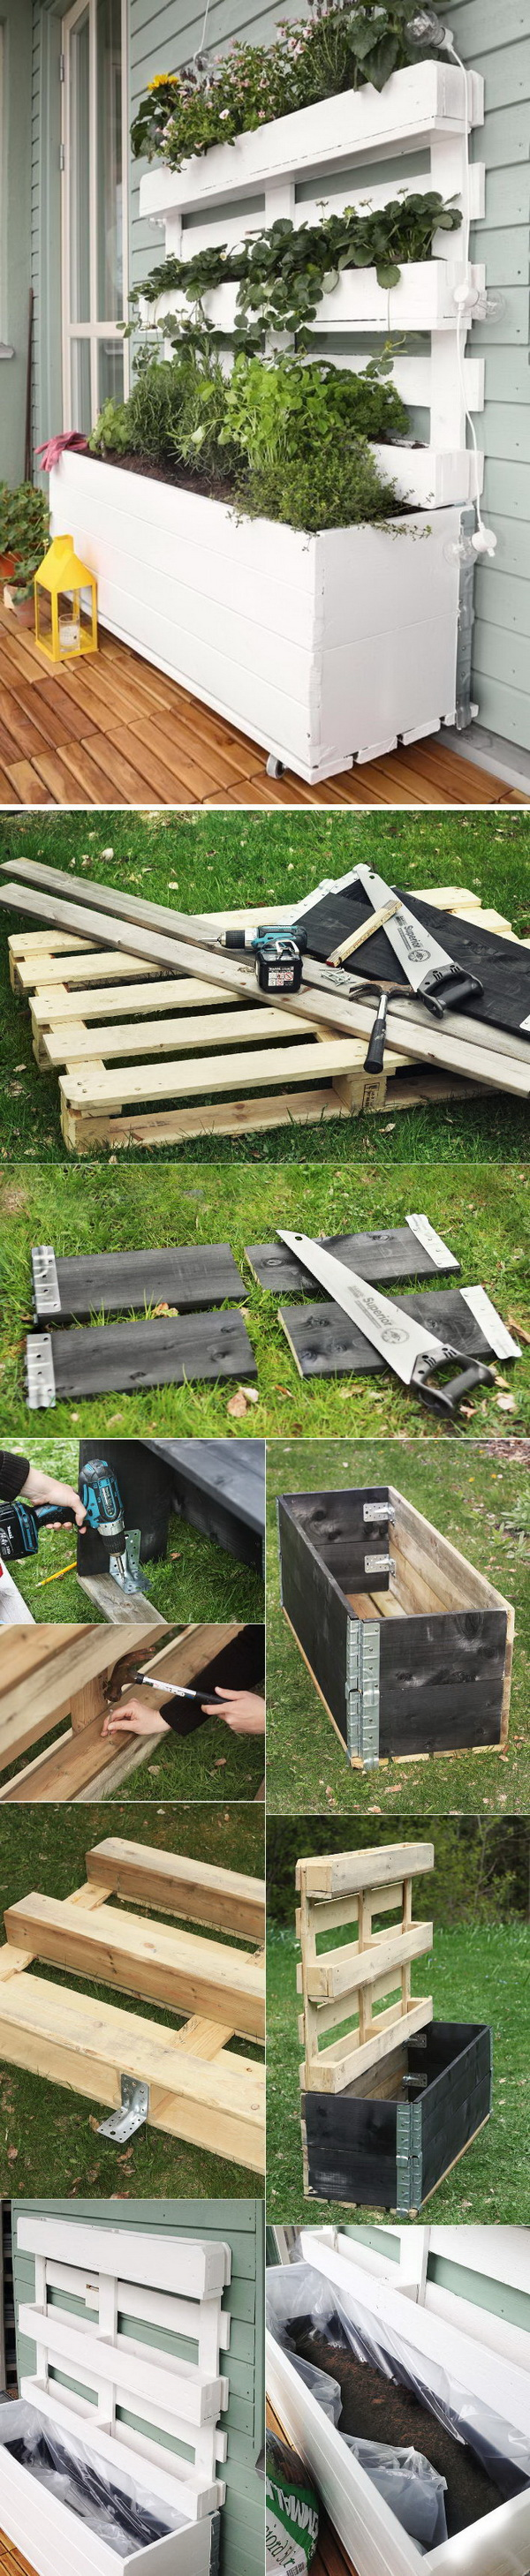 DIY Pallet Planter Box. DIY planter box made from recycled pallets. Great addition to your beautiful porch!